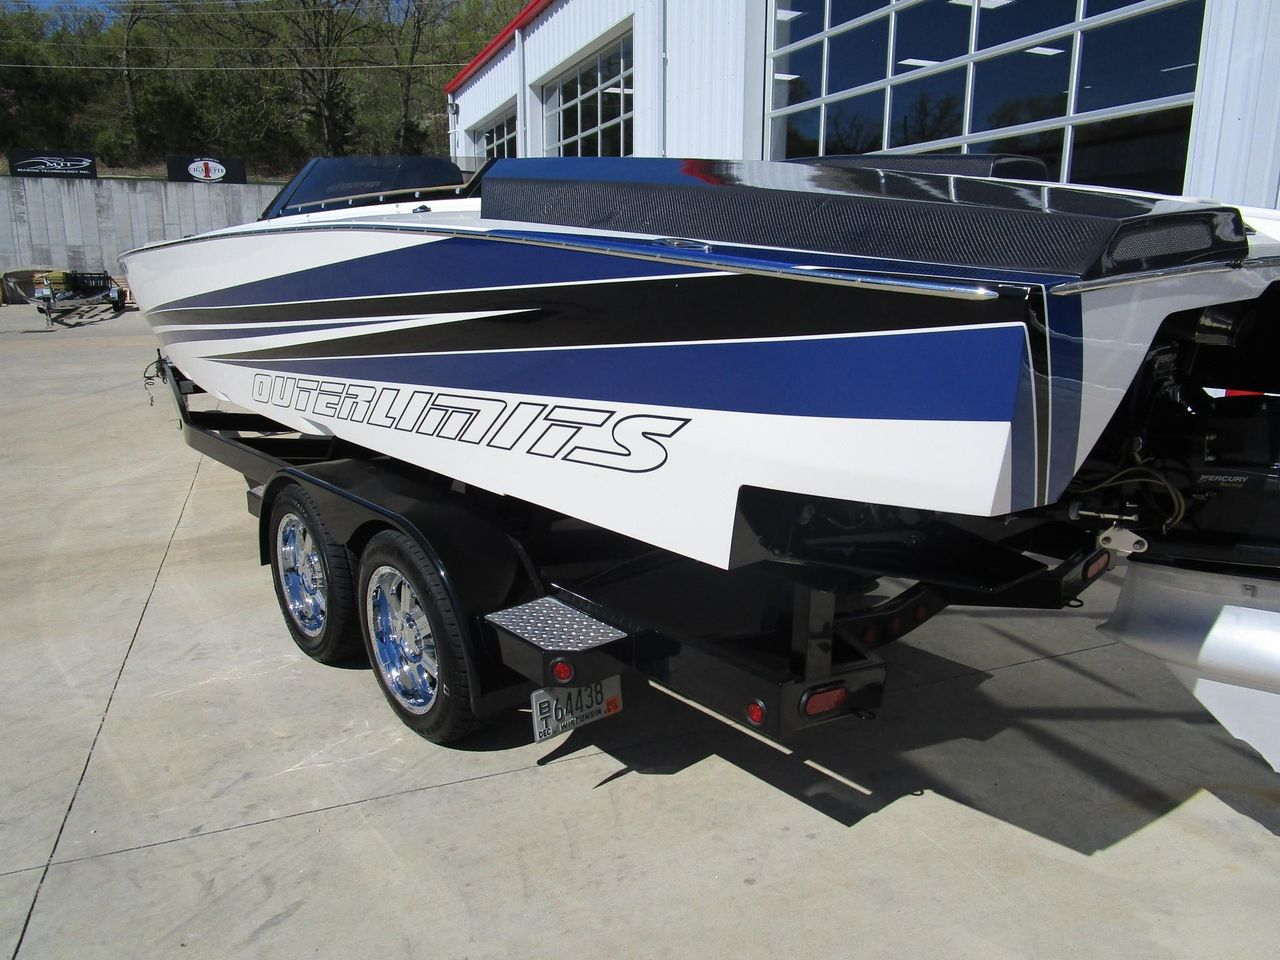 2012 Used Outerlimits SV29 High Performance Boat For Sale